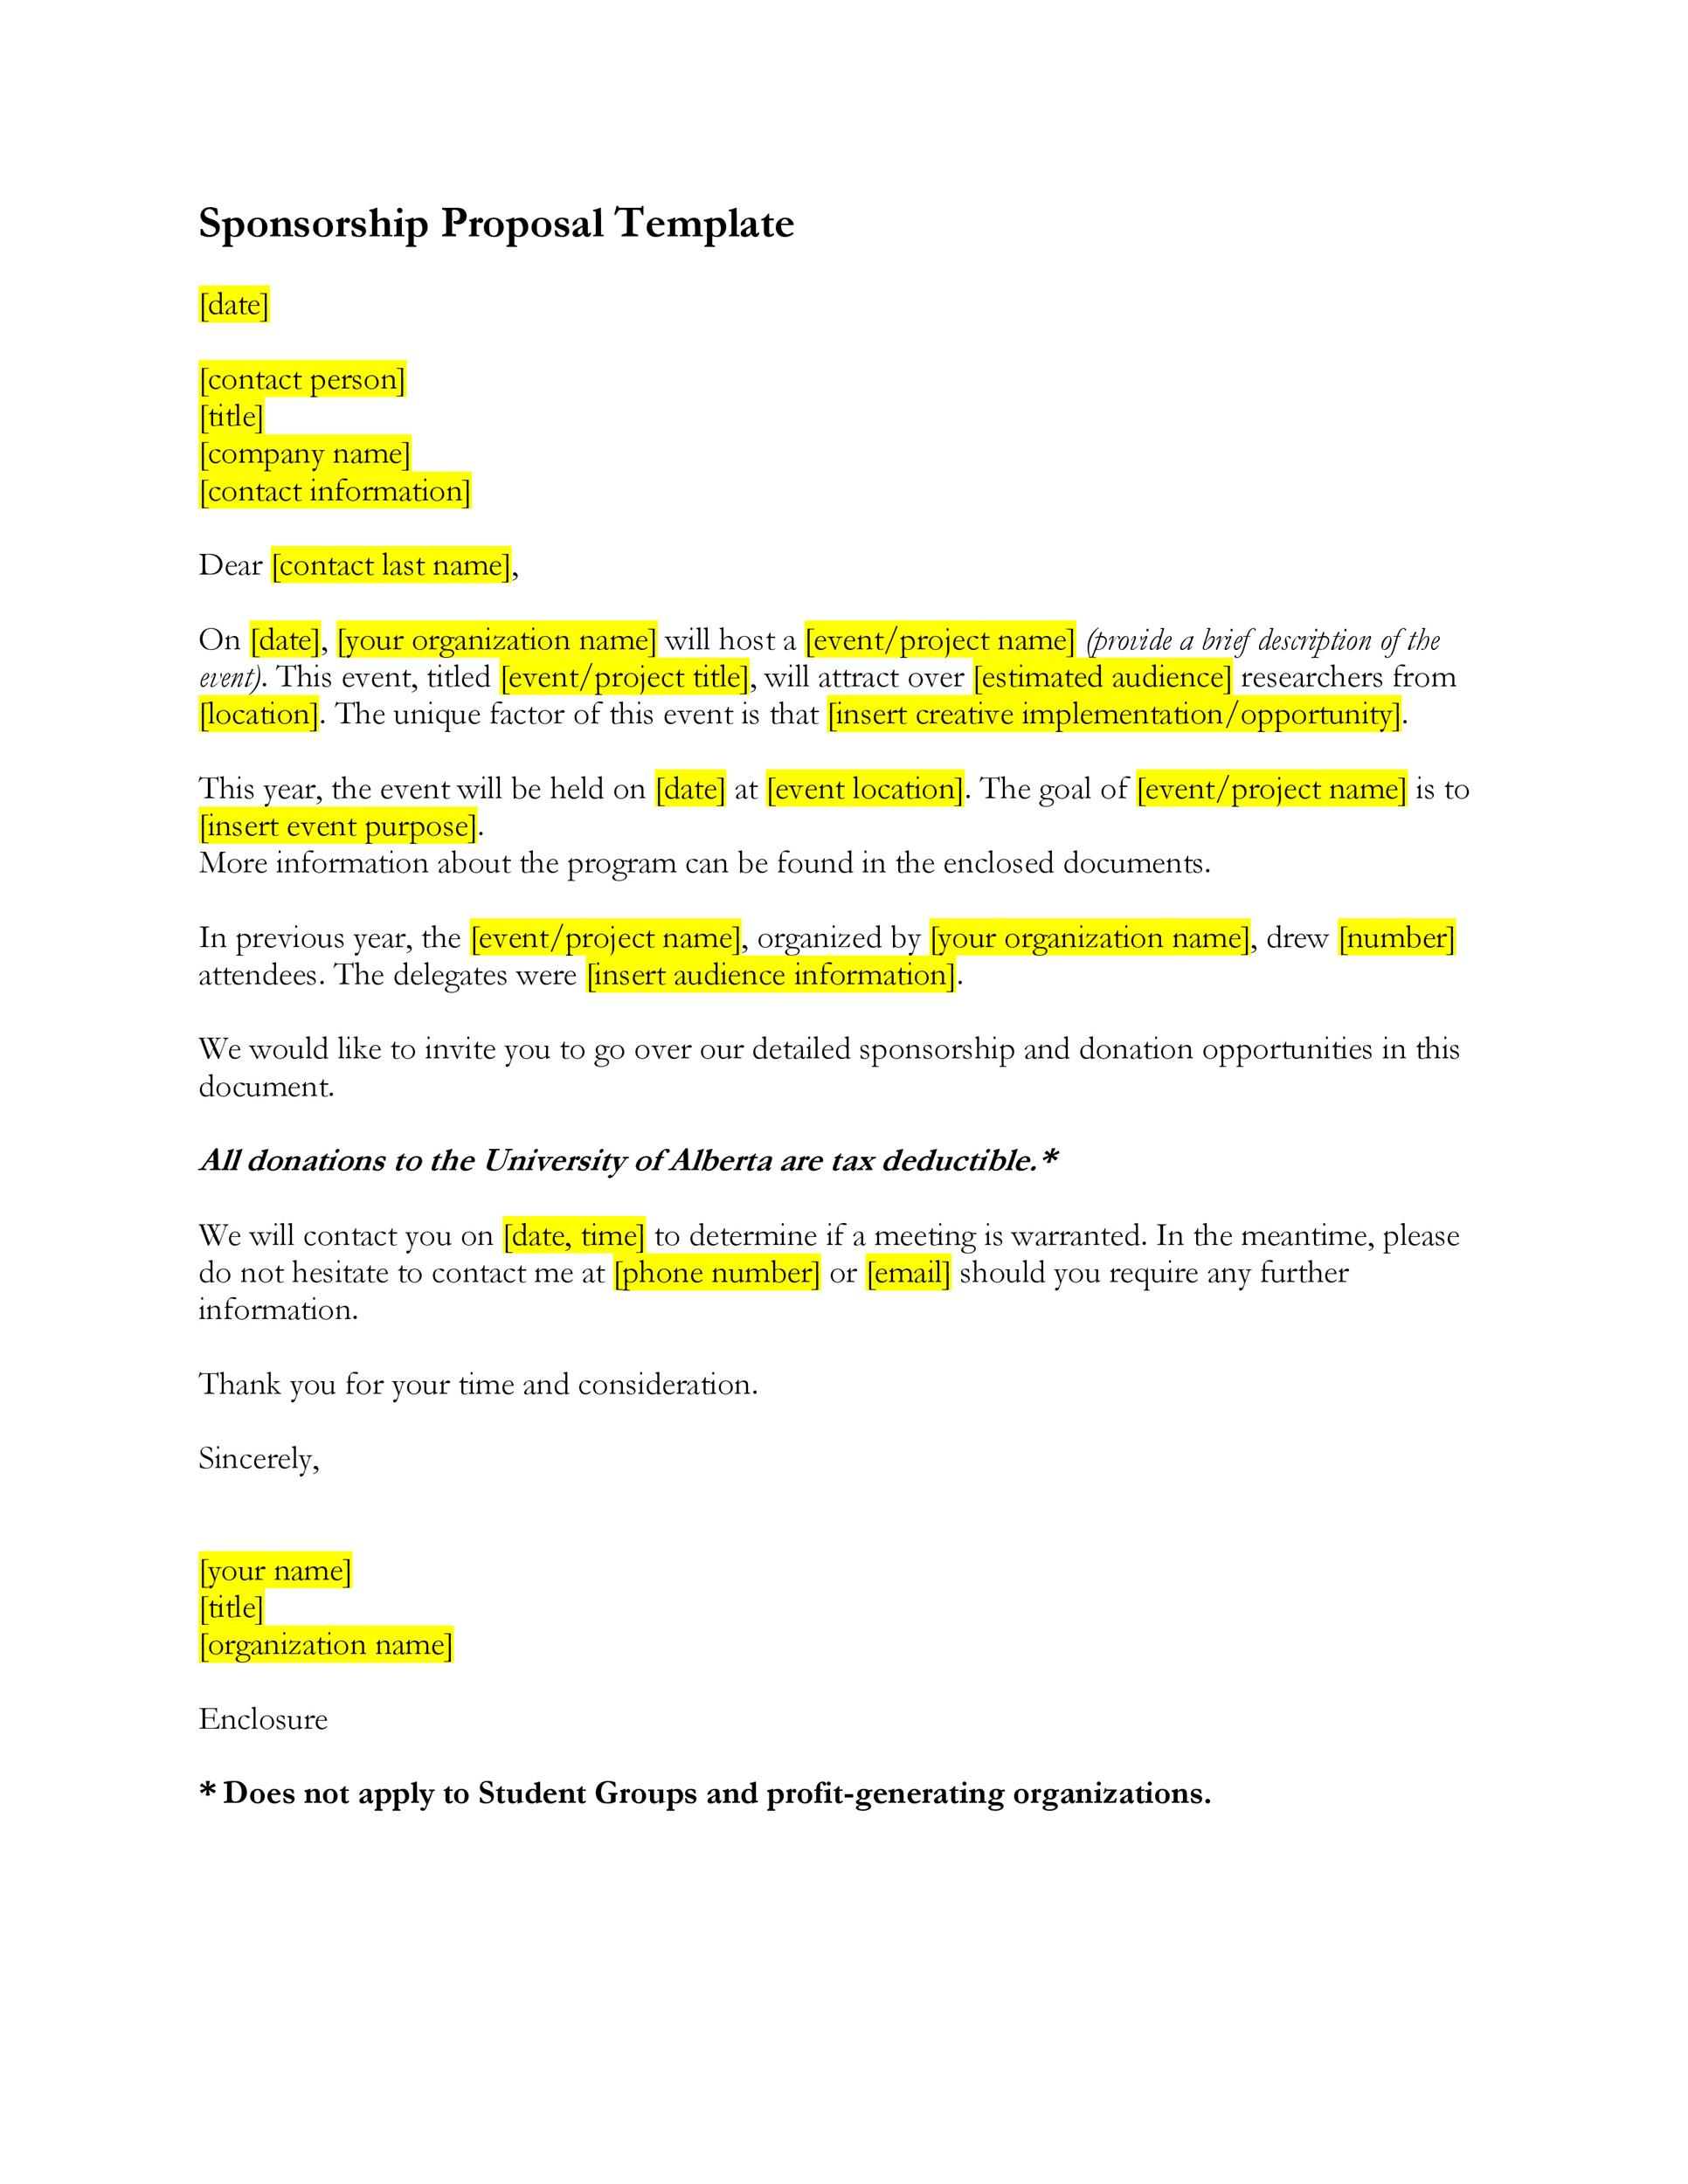 40 Sponsorship Letter Sponsorship Proposal Templates – Sponsorship Proposals for Events